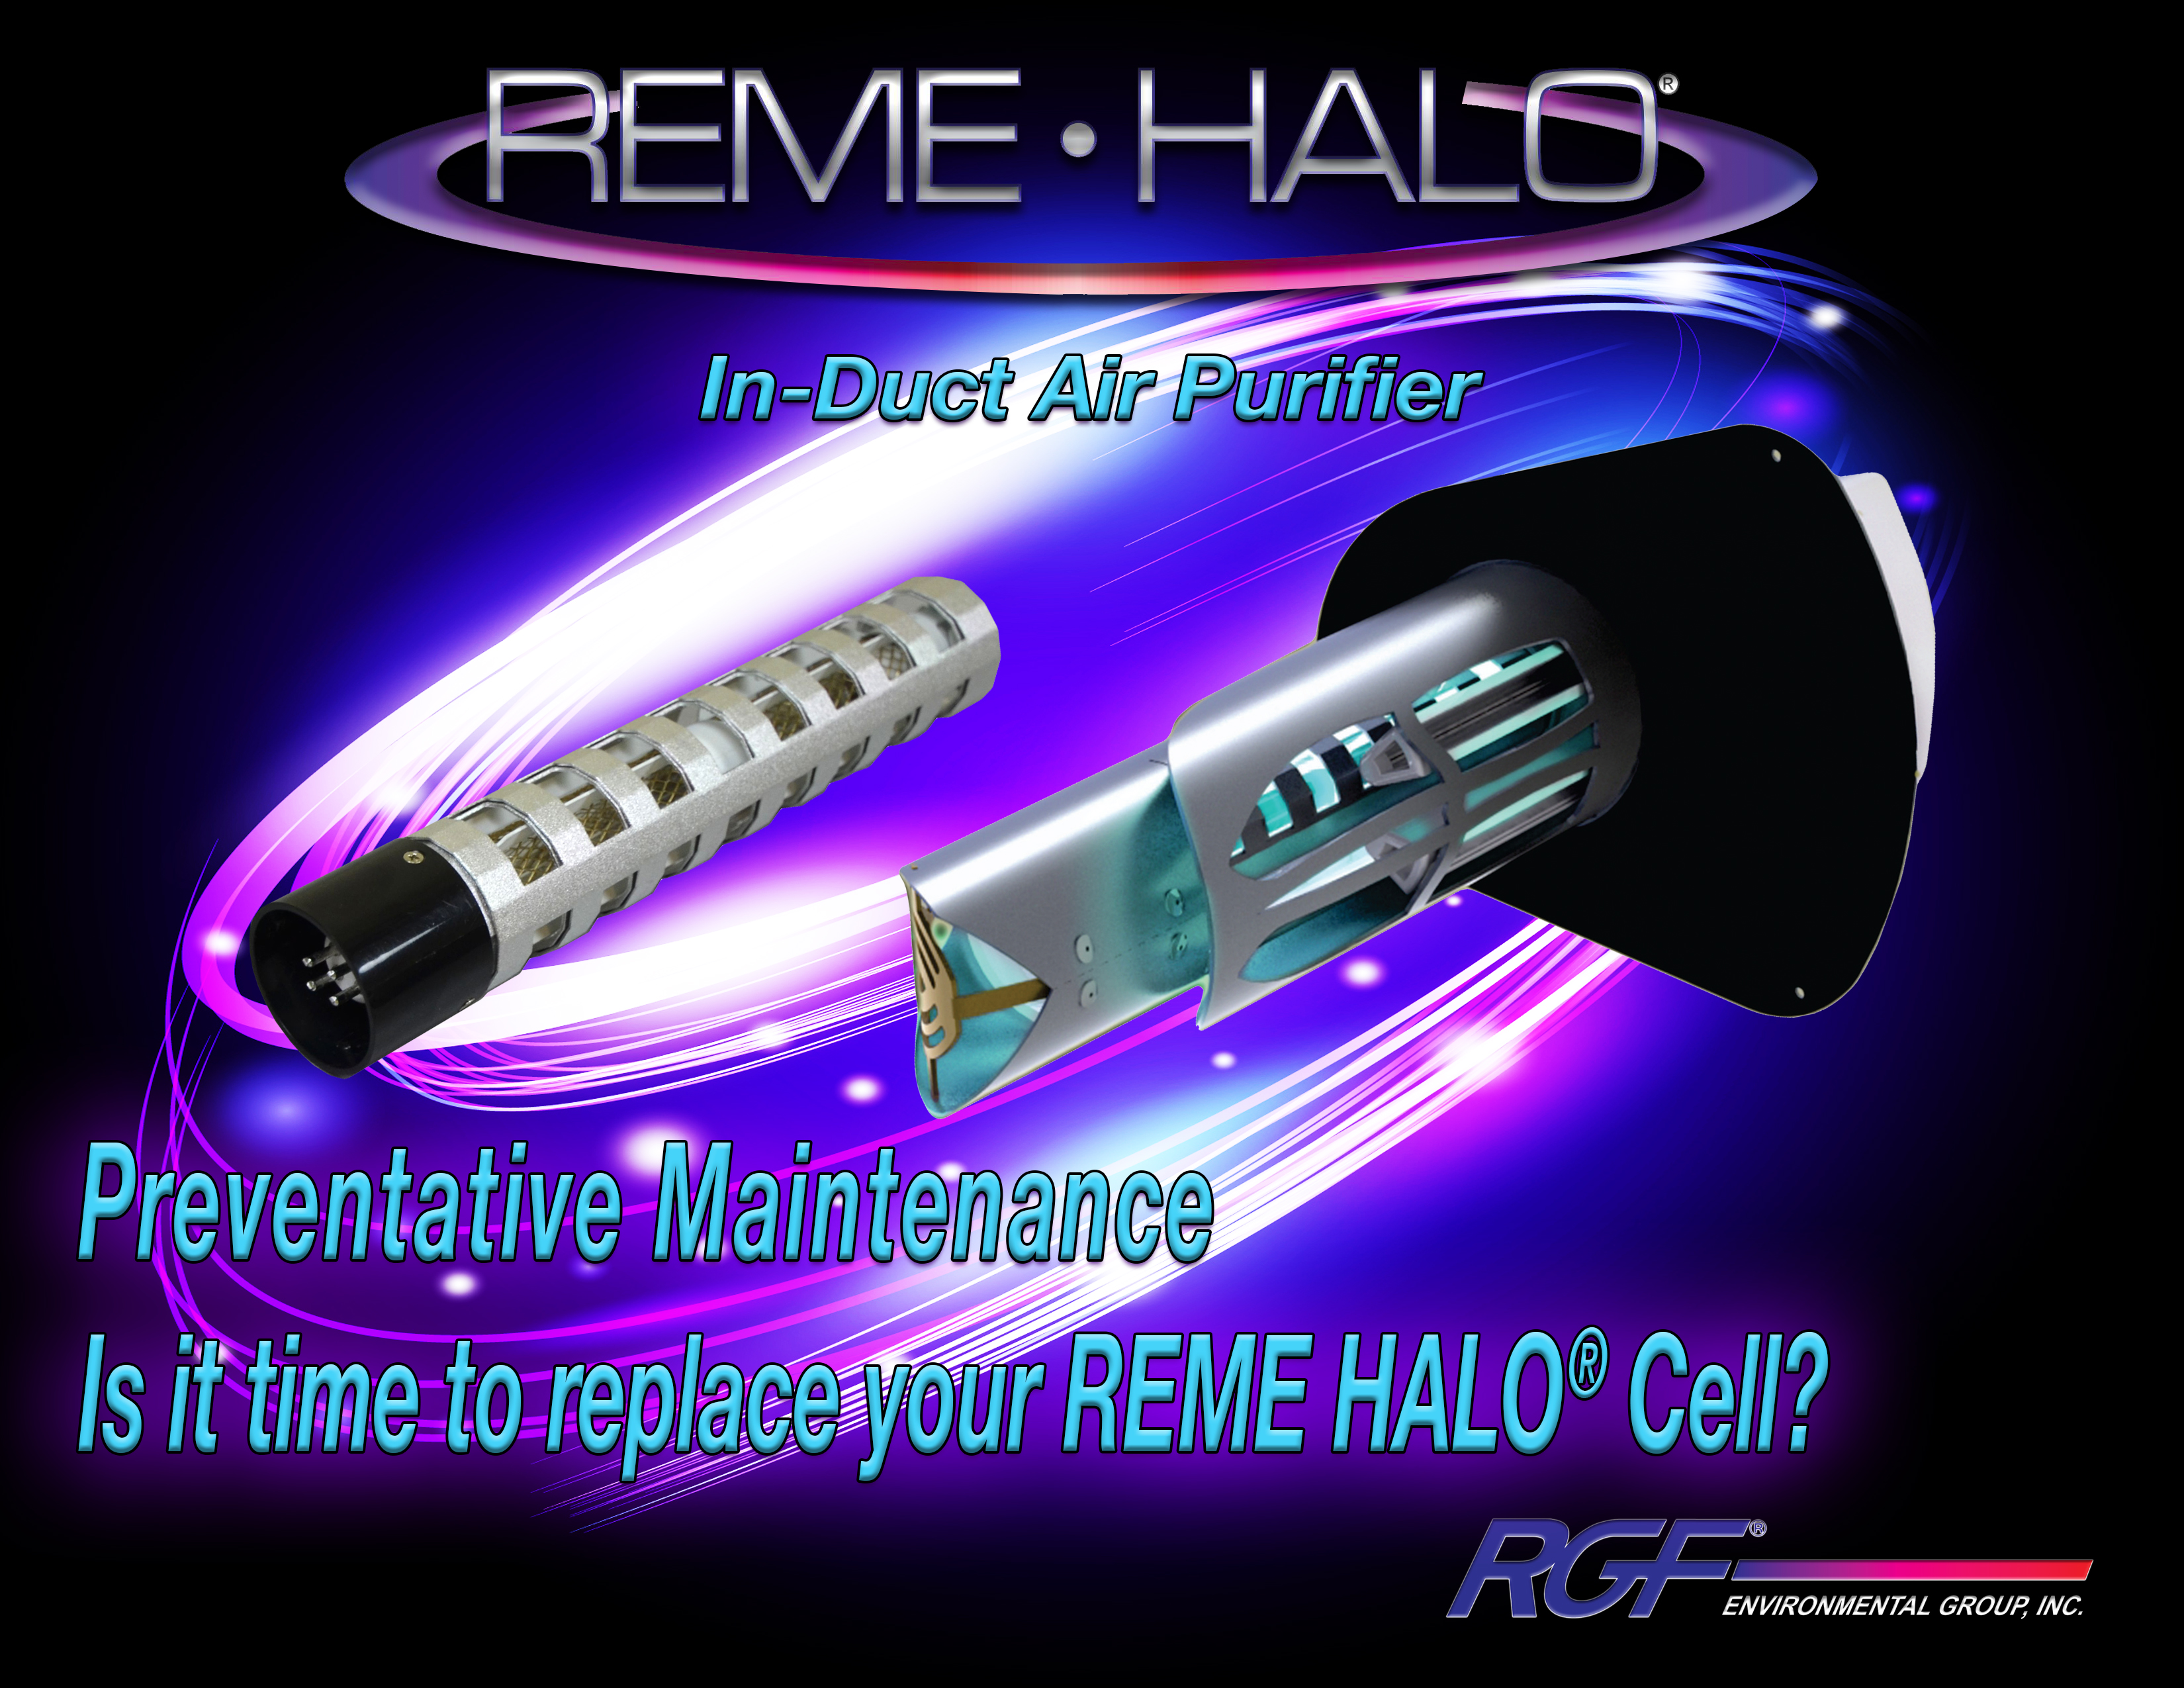 Reme Halo Cell Replacement Rgf